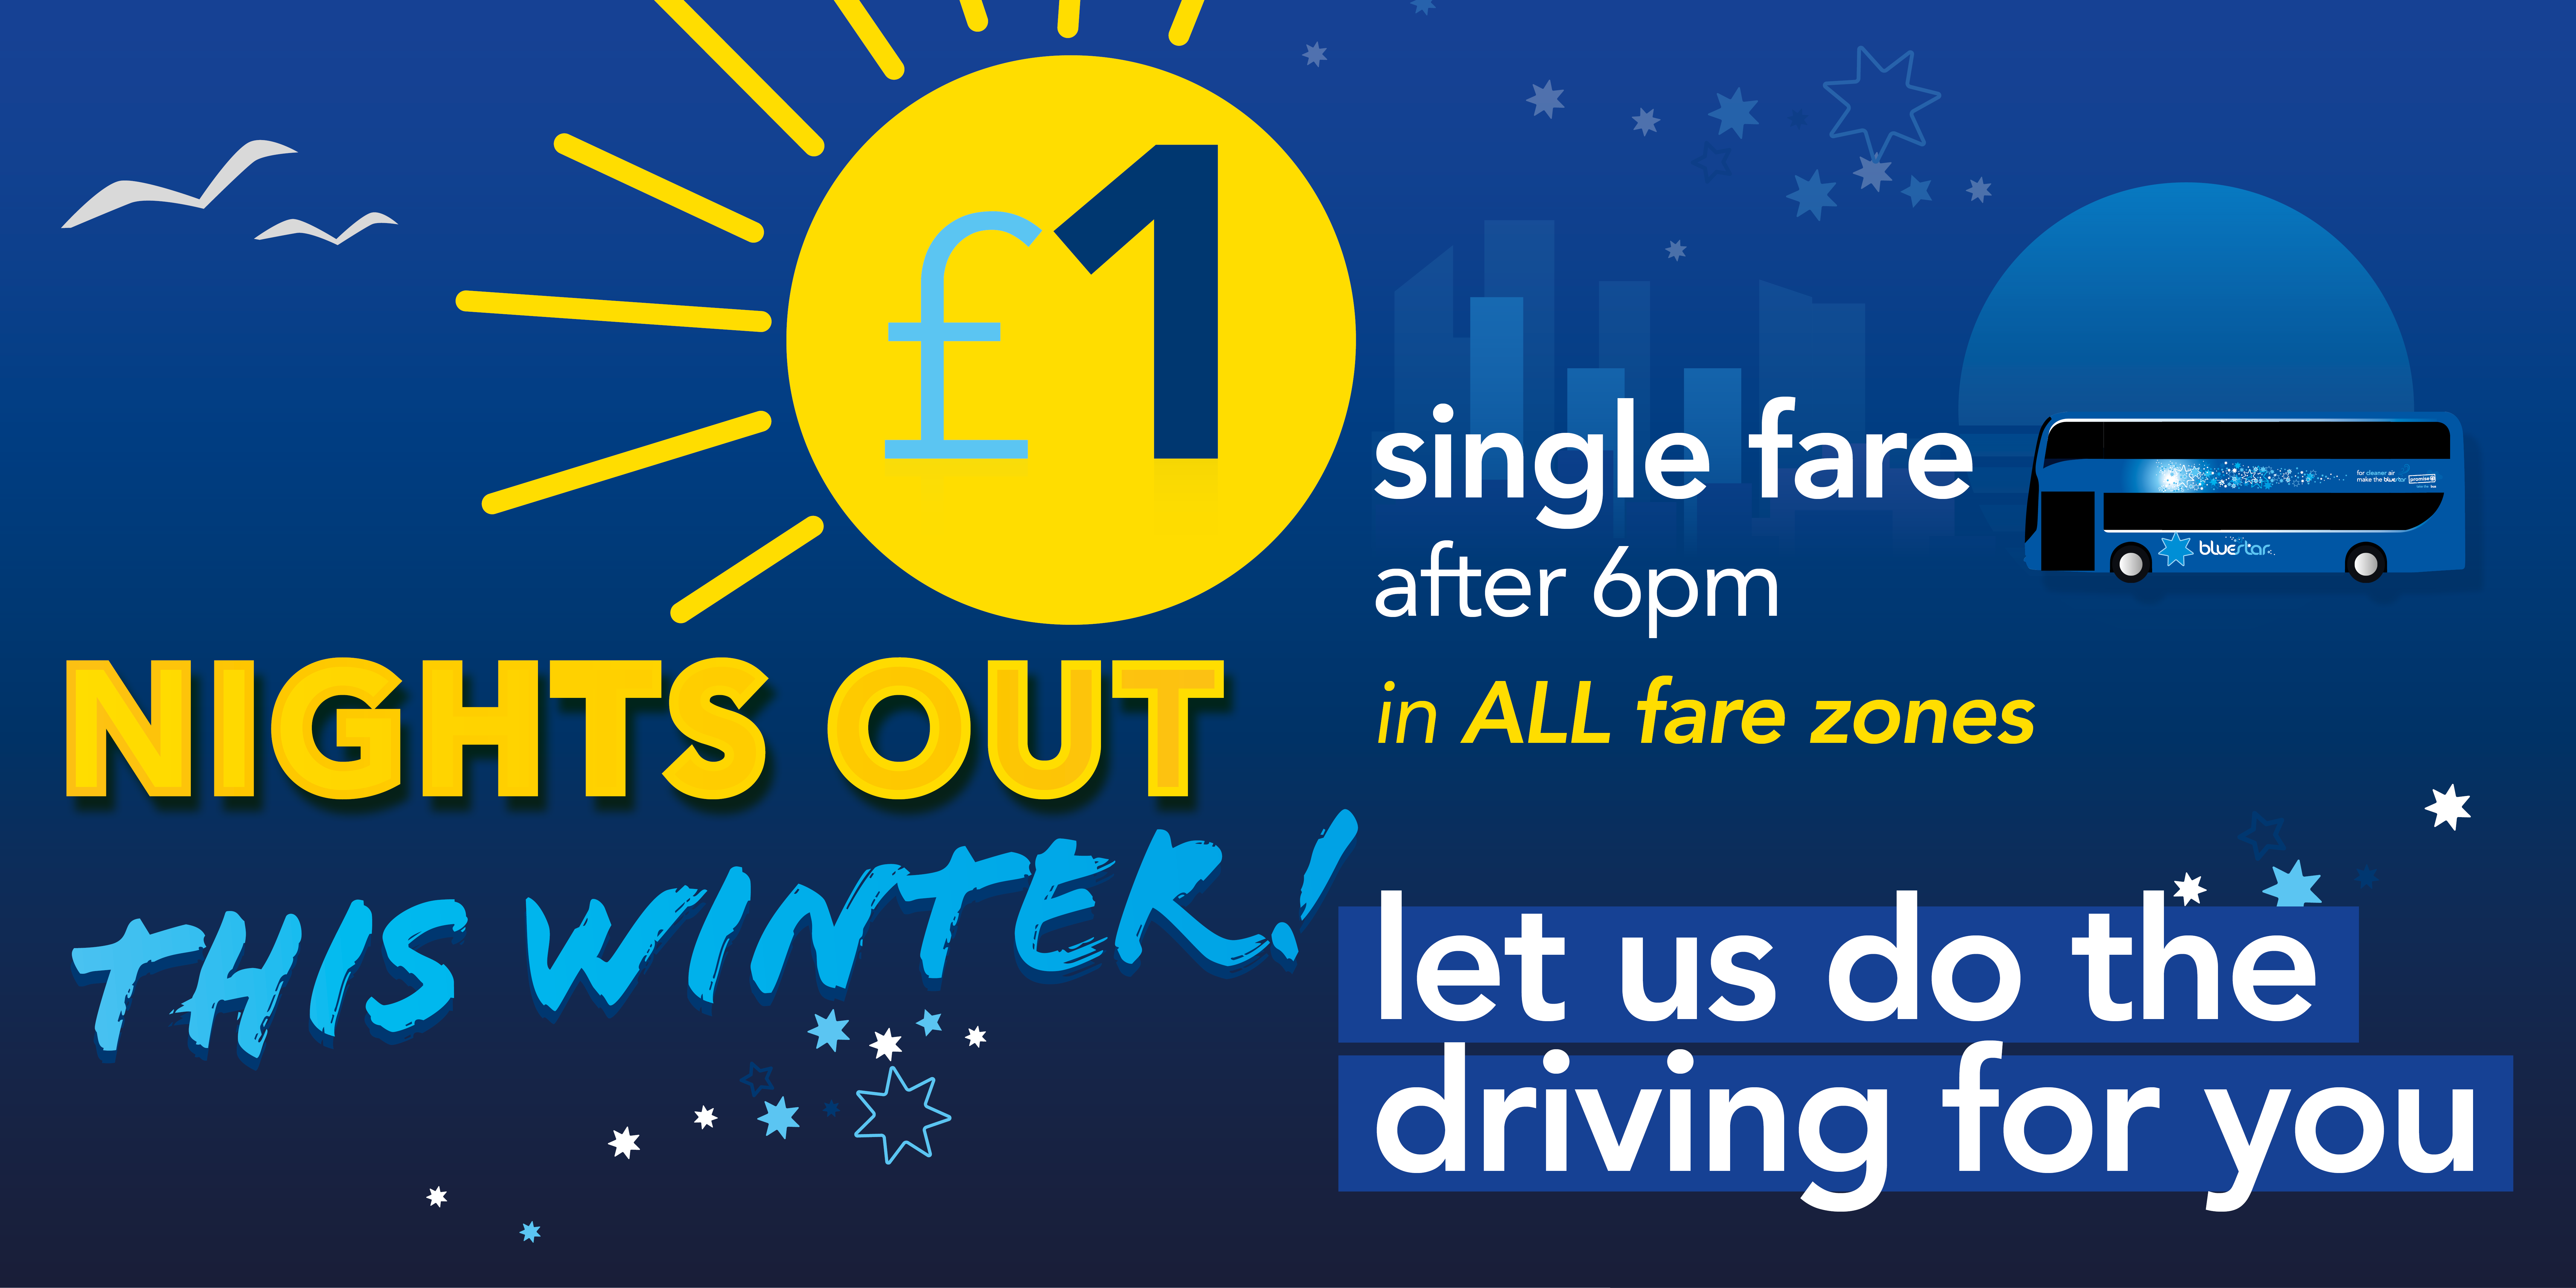 nights out this winter £1 single fare after 6pm in all fare zones